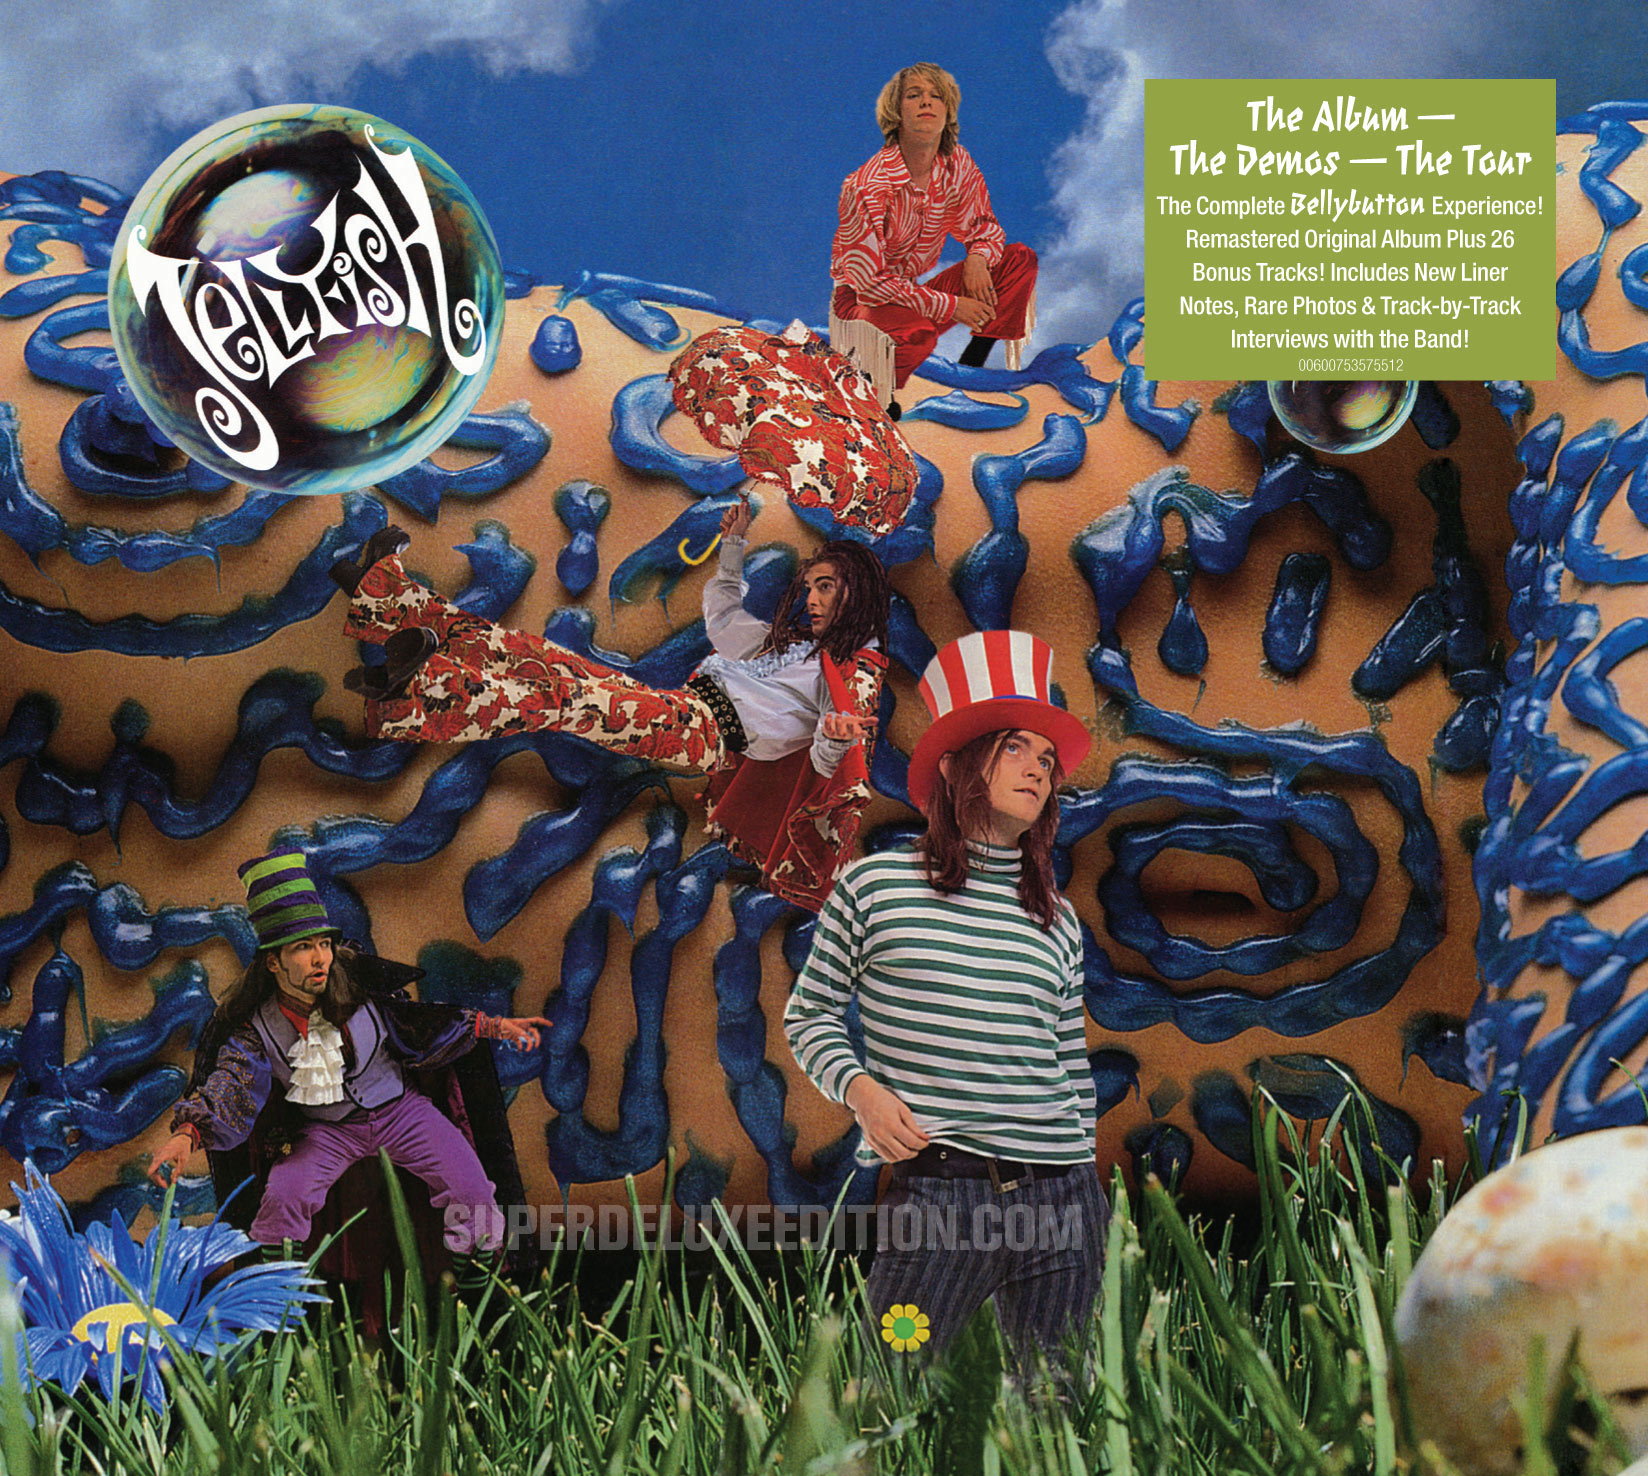 Jellyfish: Bellybutton and Spilt Milk 2CD deluxe reissues confirmed